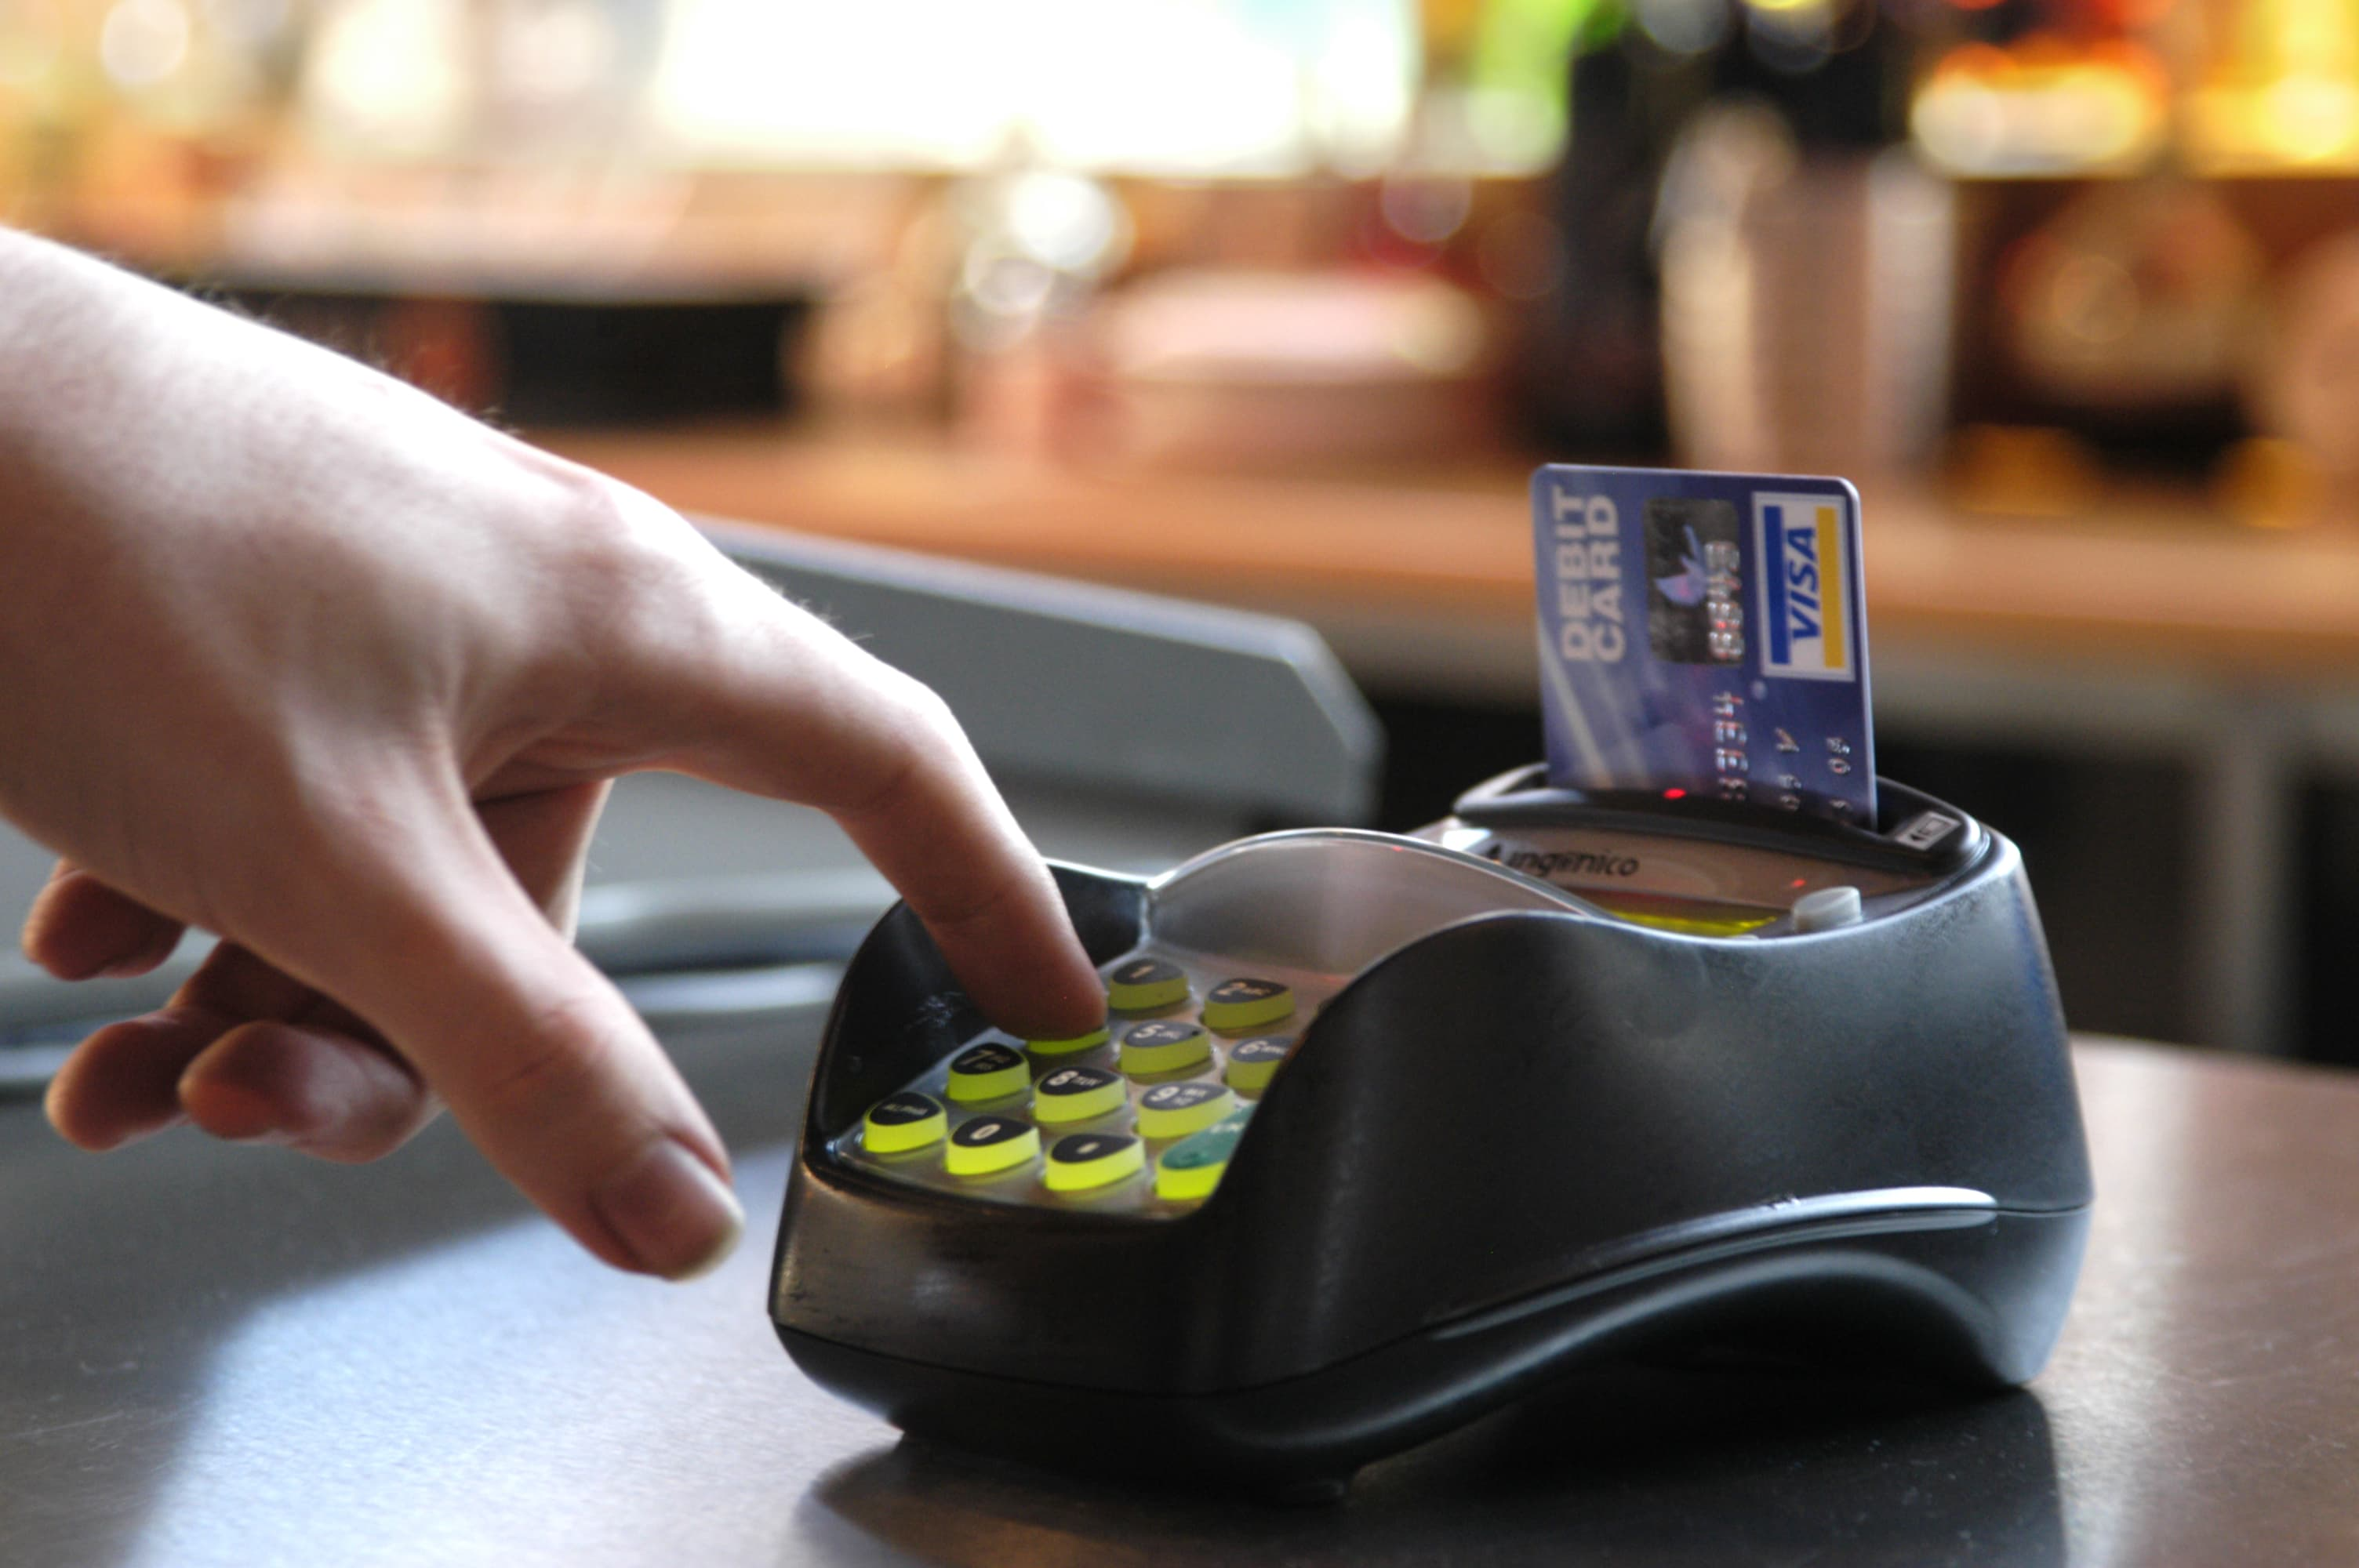 A flaw in chip and PIN threatens millions of accounts A flaw in chip and PIN threatens millions of accounts new pictures